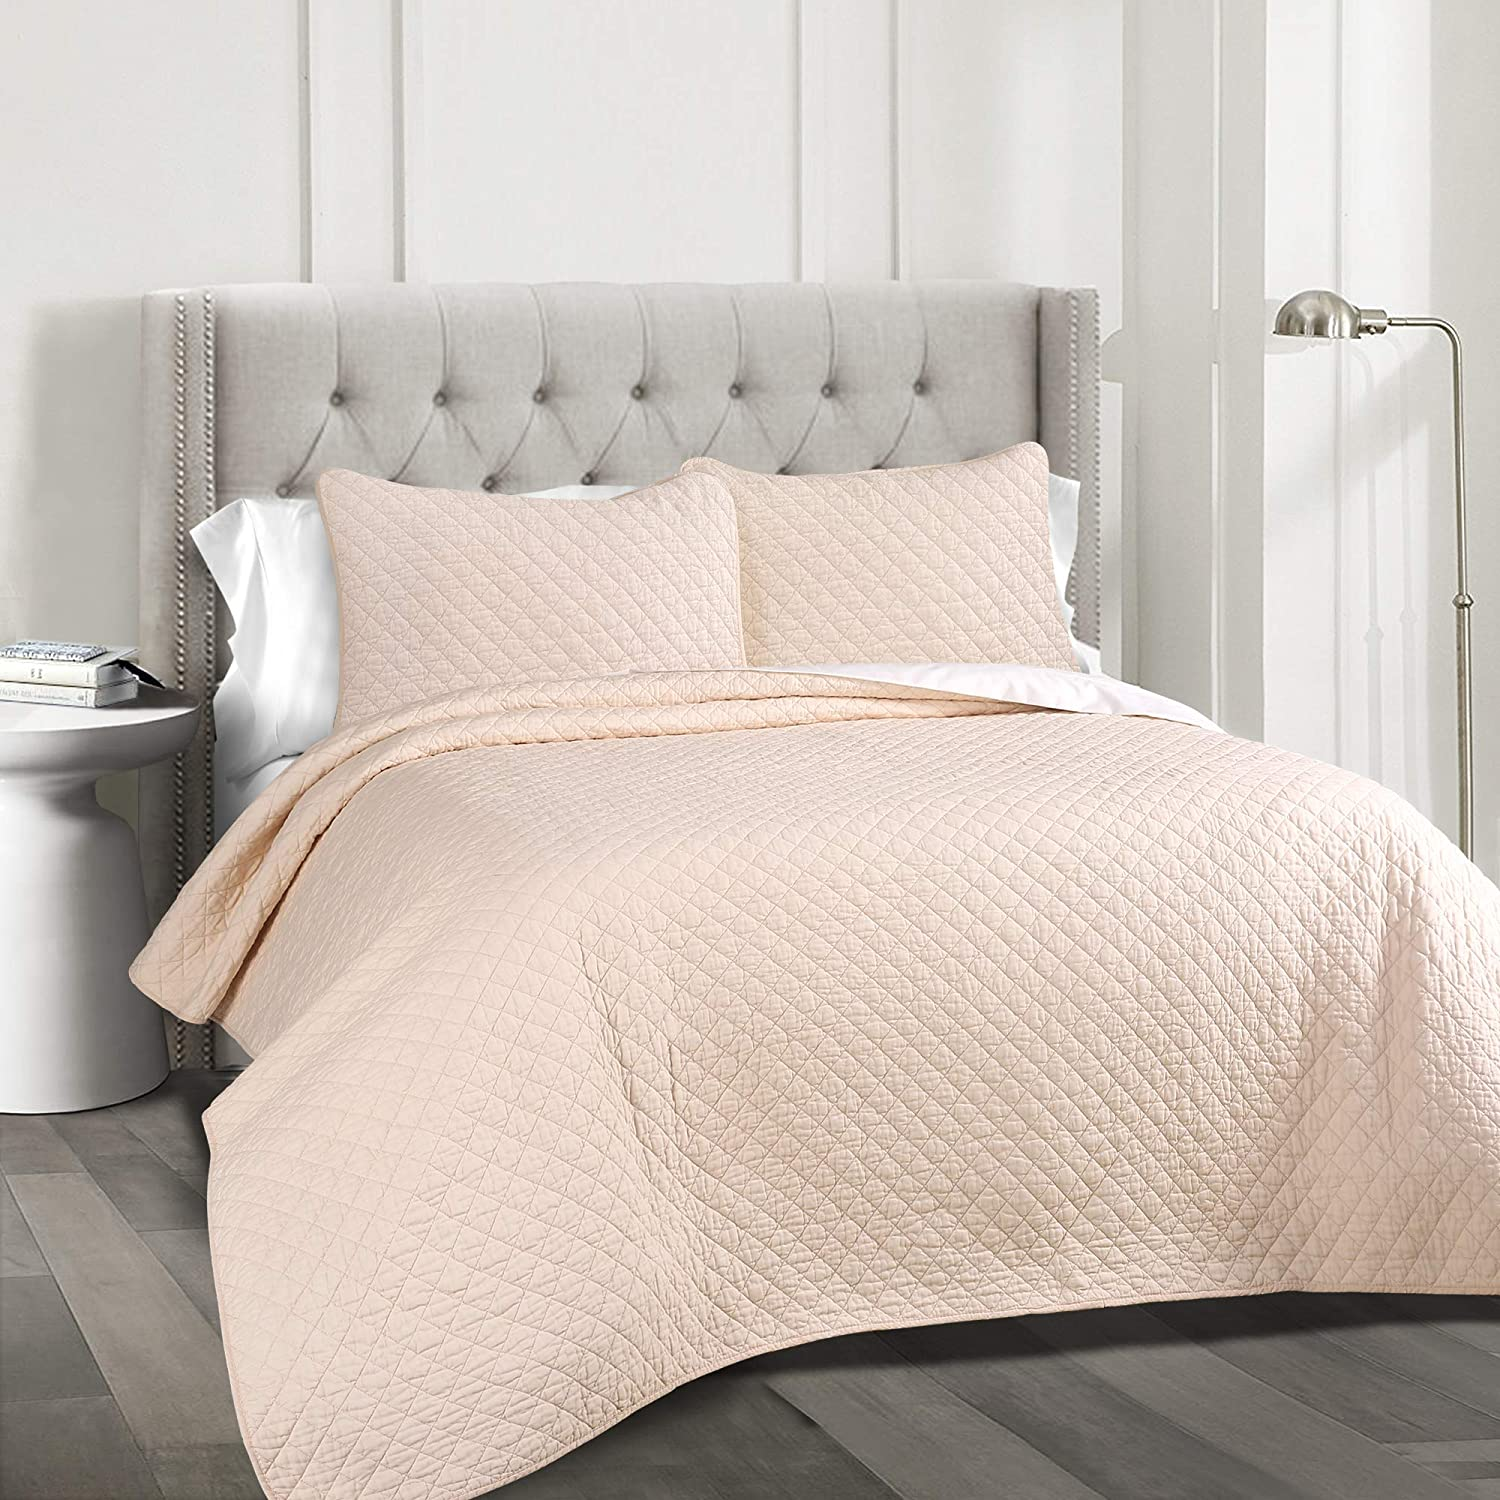 Lush Decor Ava Quilt Diamond Pattern Solid 3 Piece Oversized Bedding Blanket Bedspread Set - Full Queen - Blush